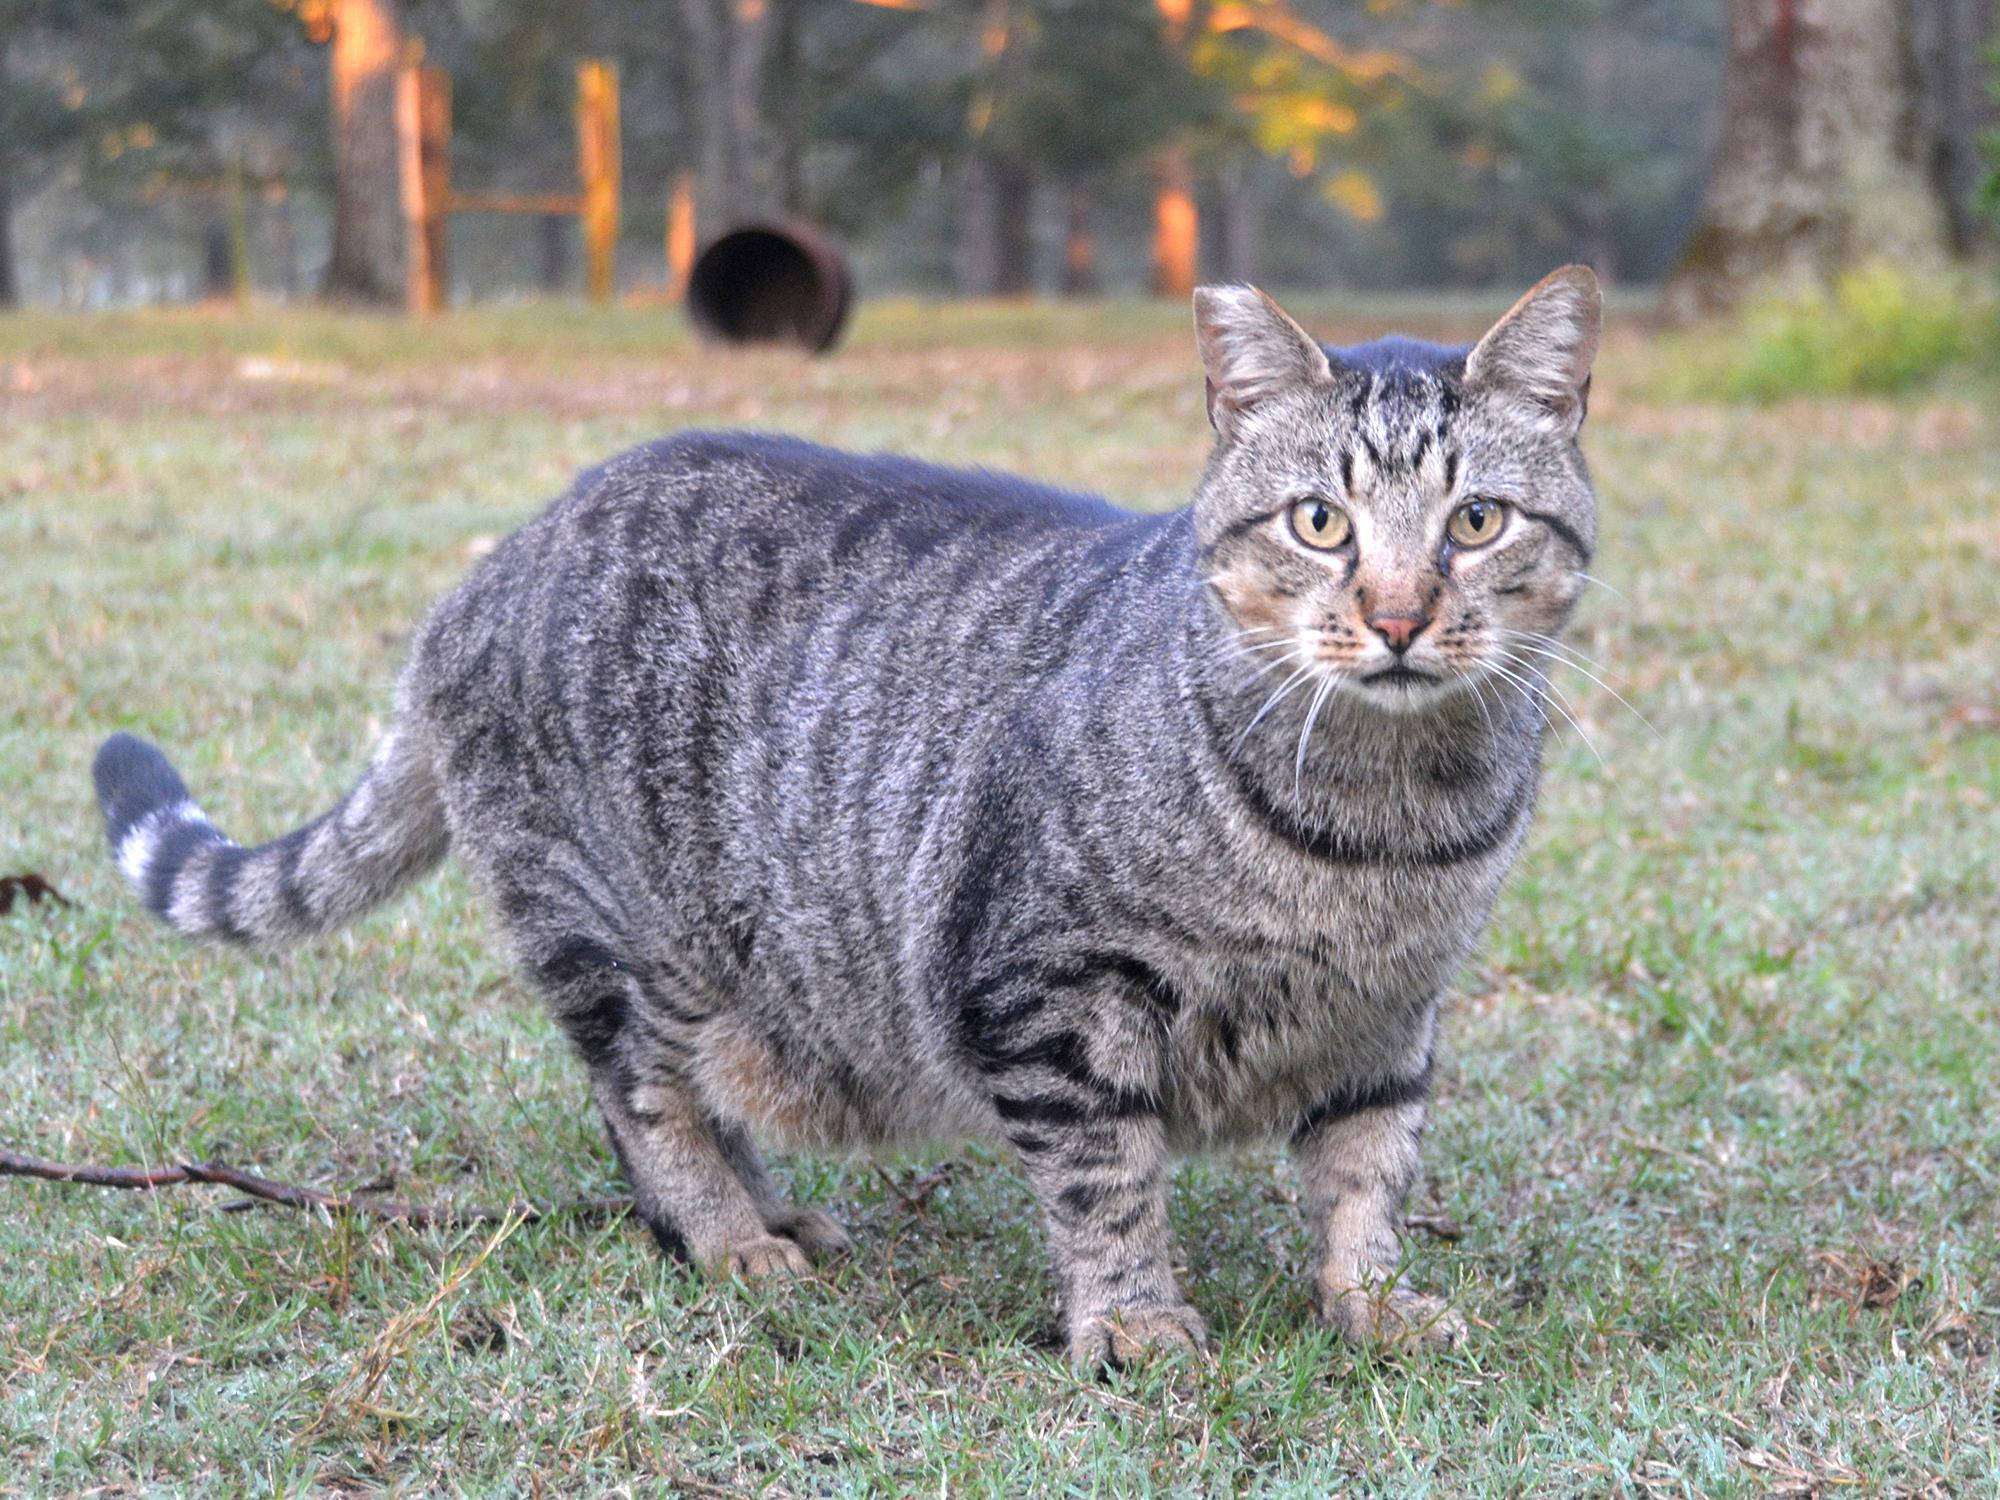 The cut across the tip of this gray cat's right ear is visible as it looks at the camera while standing in a barnyard.